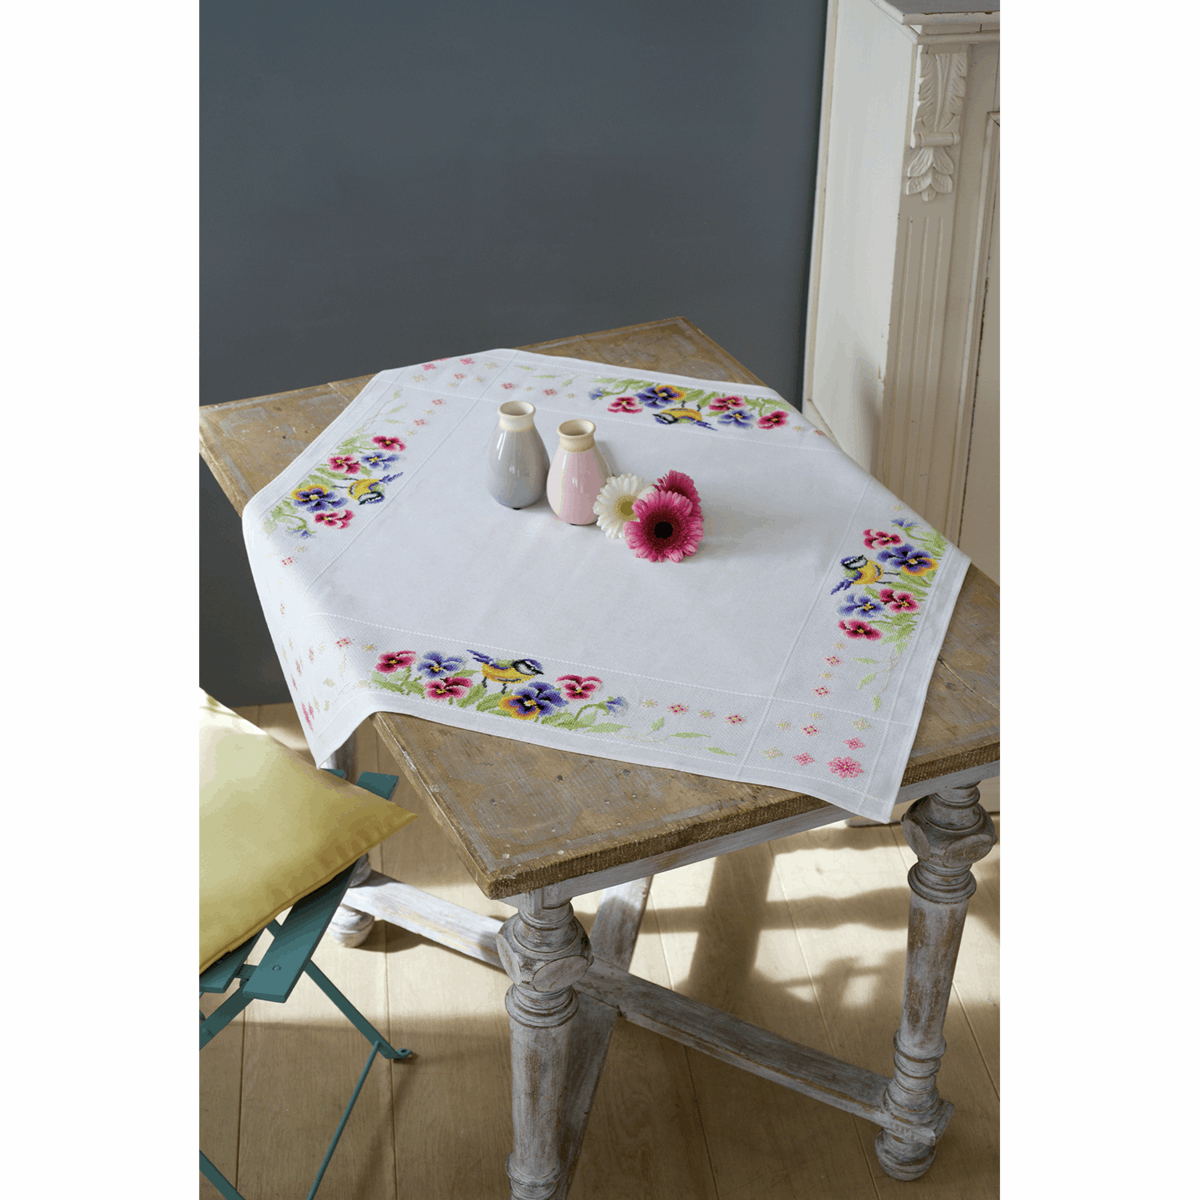 Picture of Cross Stitch Kit: Tablecloth: Bird & Violets